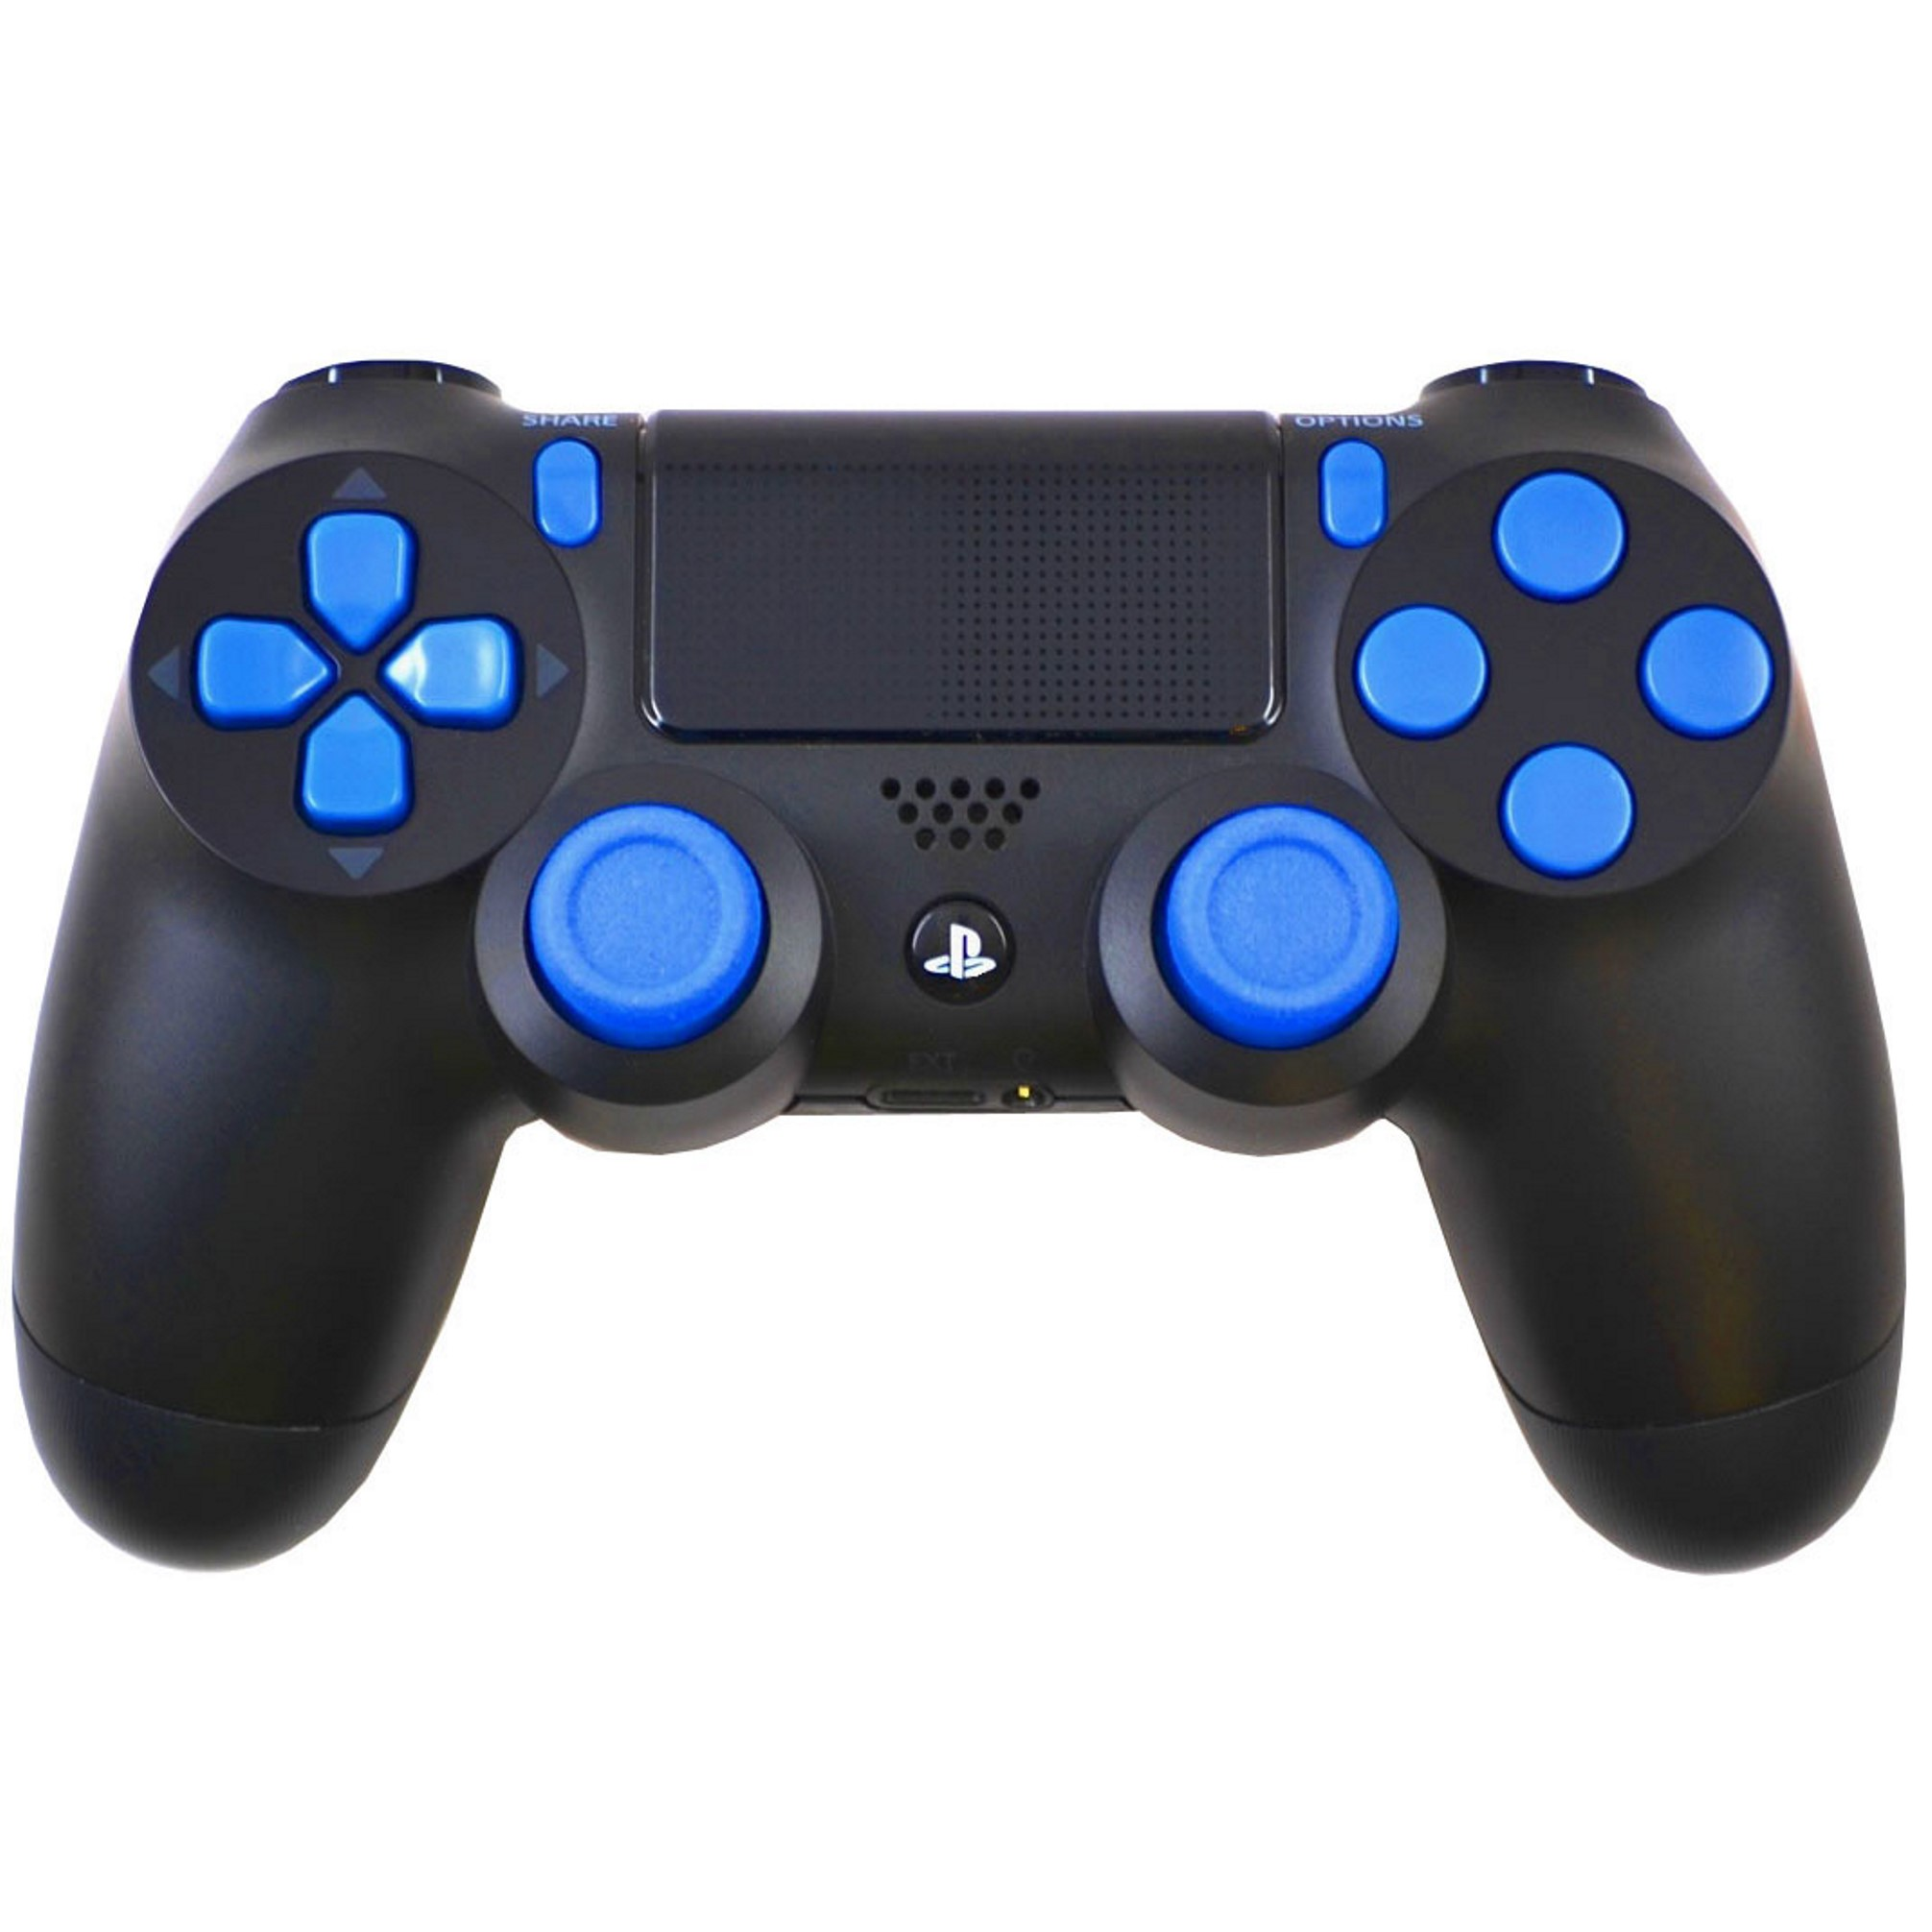 Blue Out Playstation 4 PS4 Modded Controller for ALL Games, Including Call of Duty Infinite Warfare, by Midnight Modz